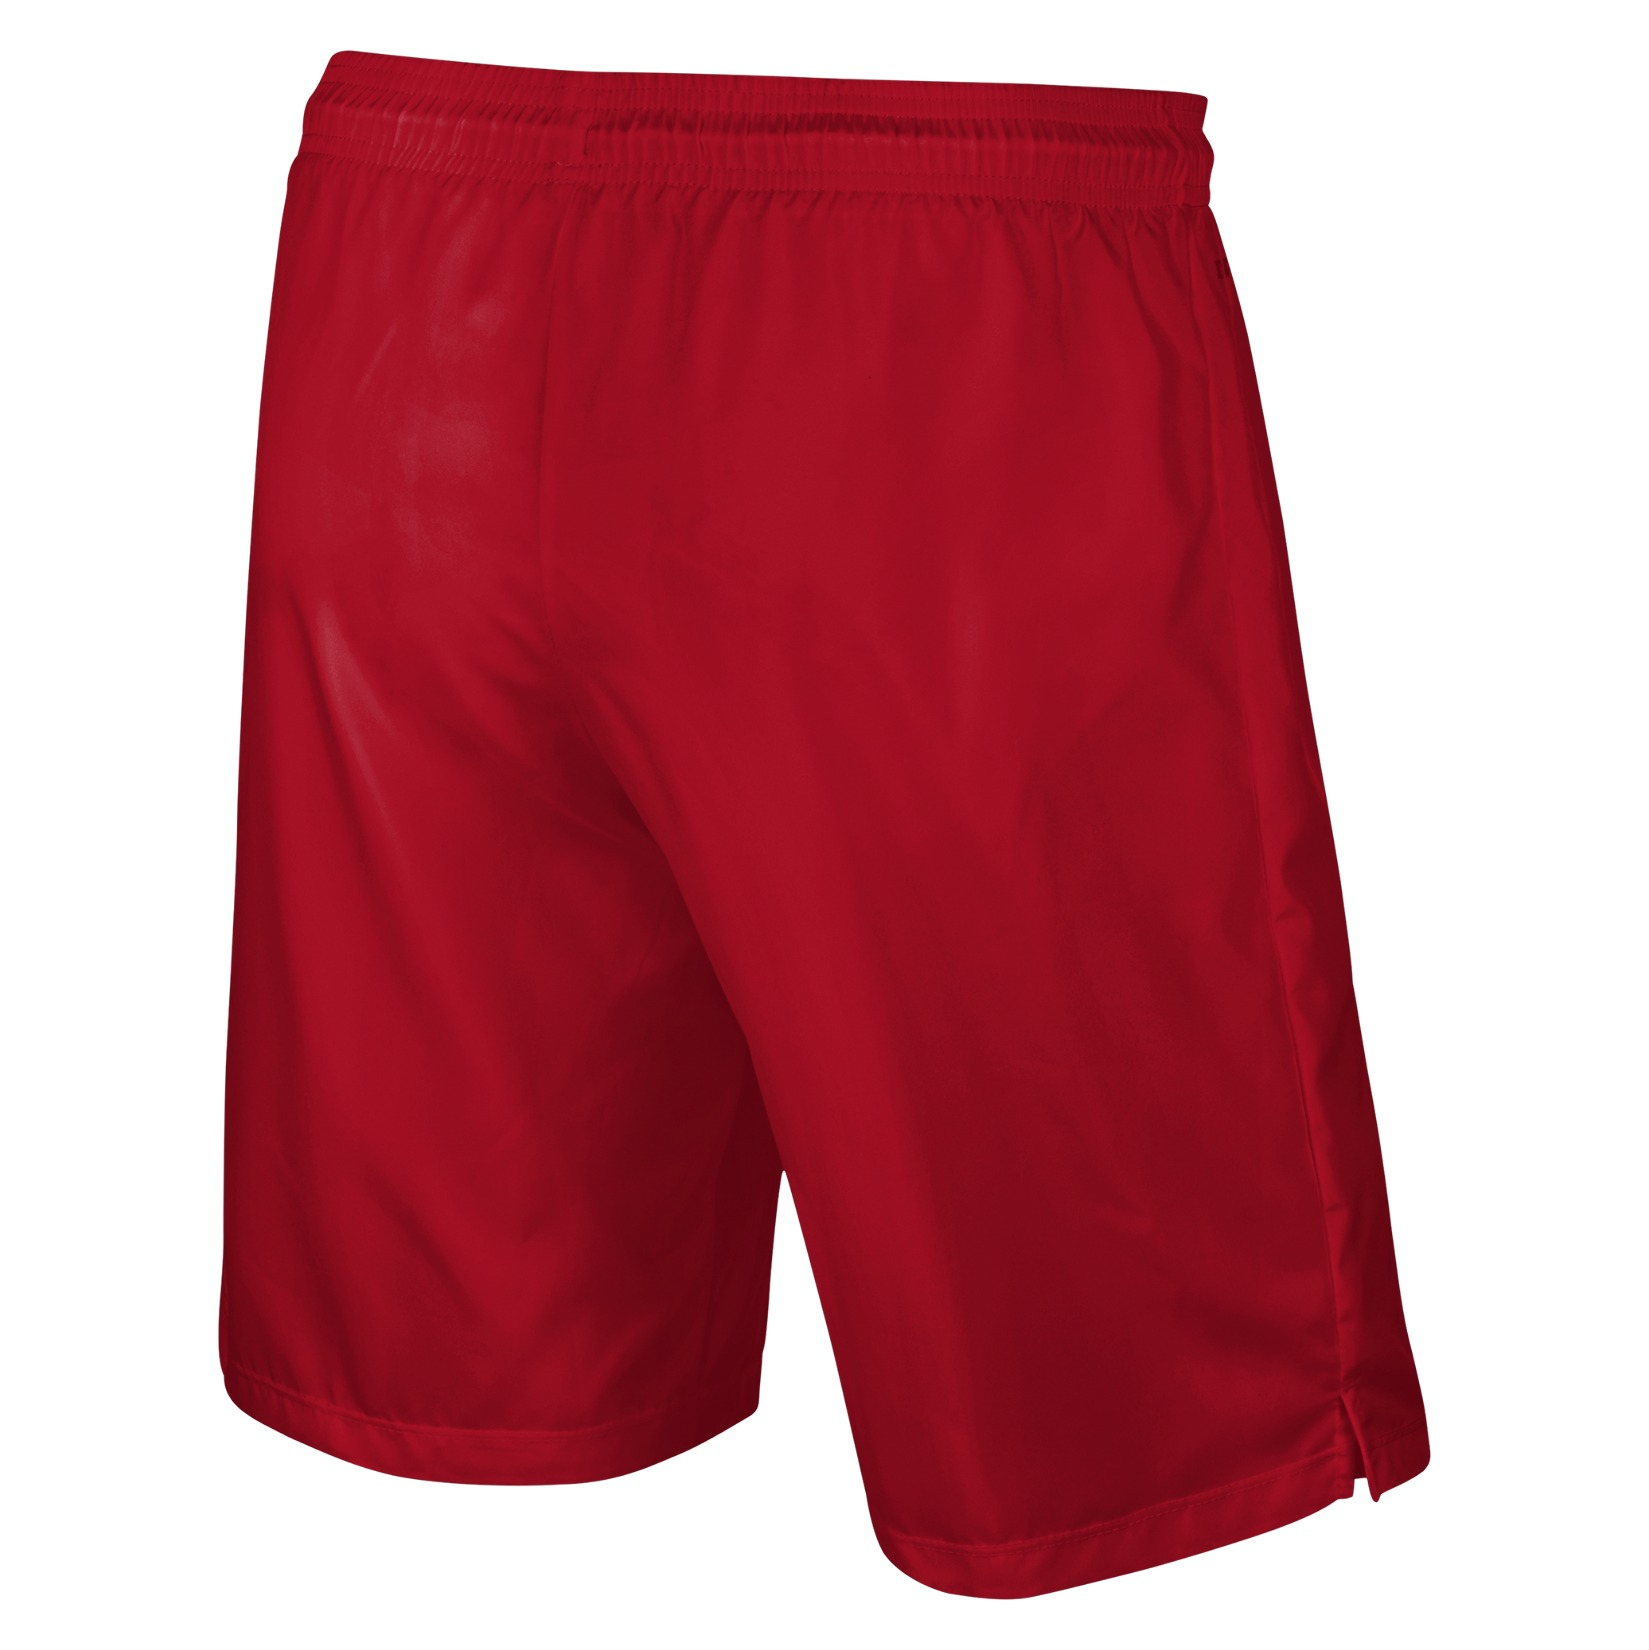 Nike Laser III Woven Short University Red-White